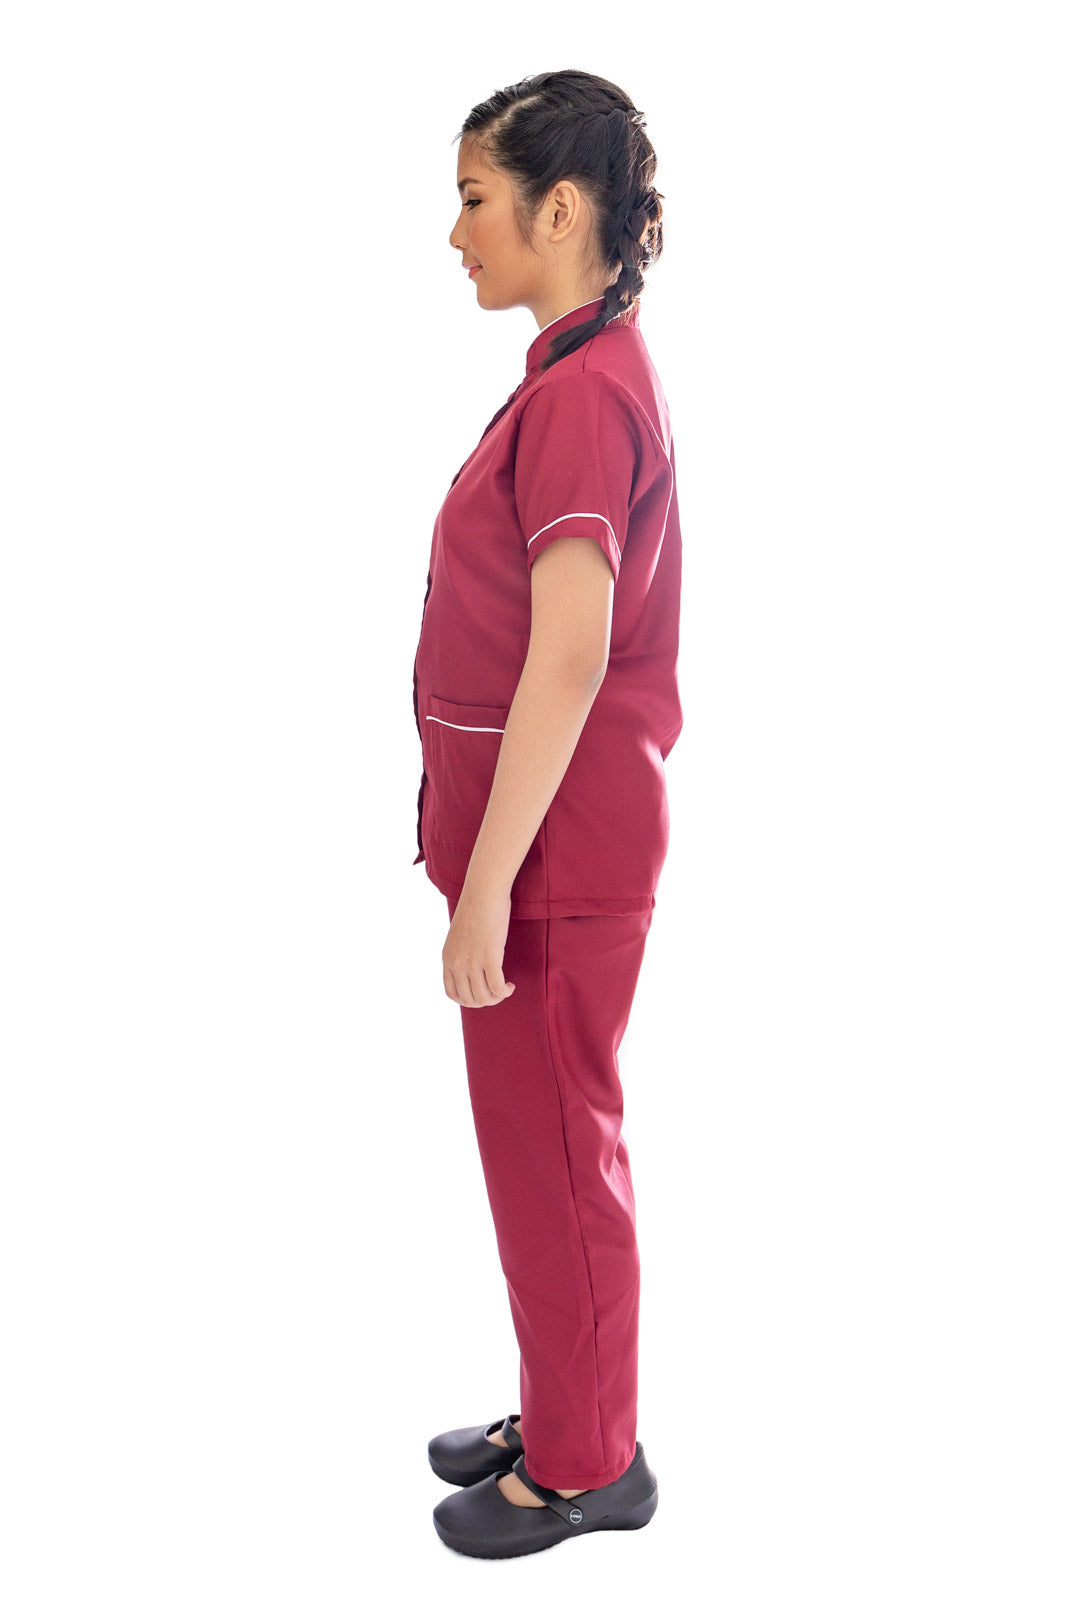 Our Soft Annie Suit in Maroon/Cream